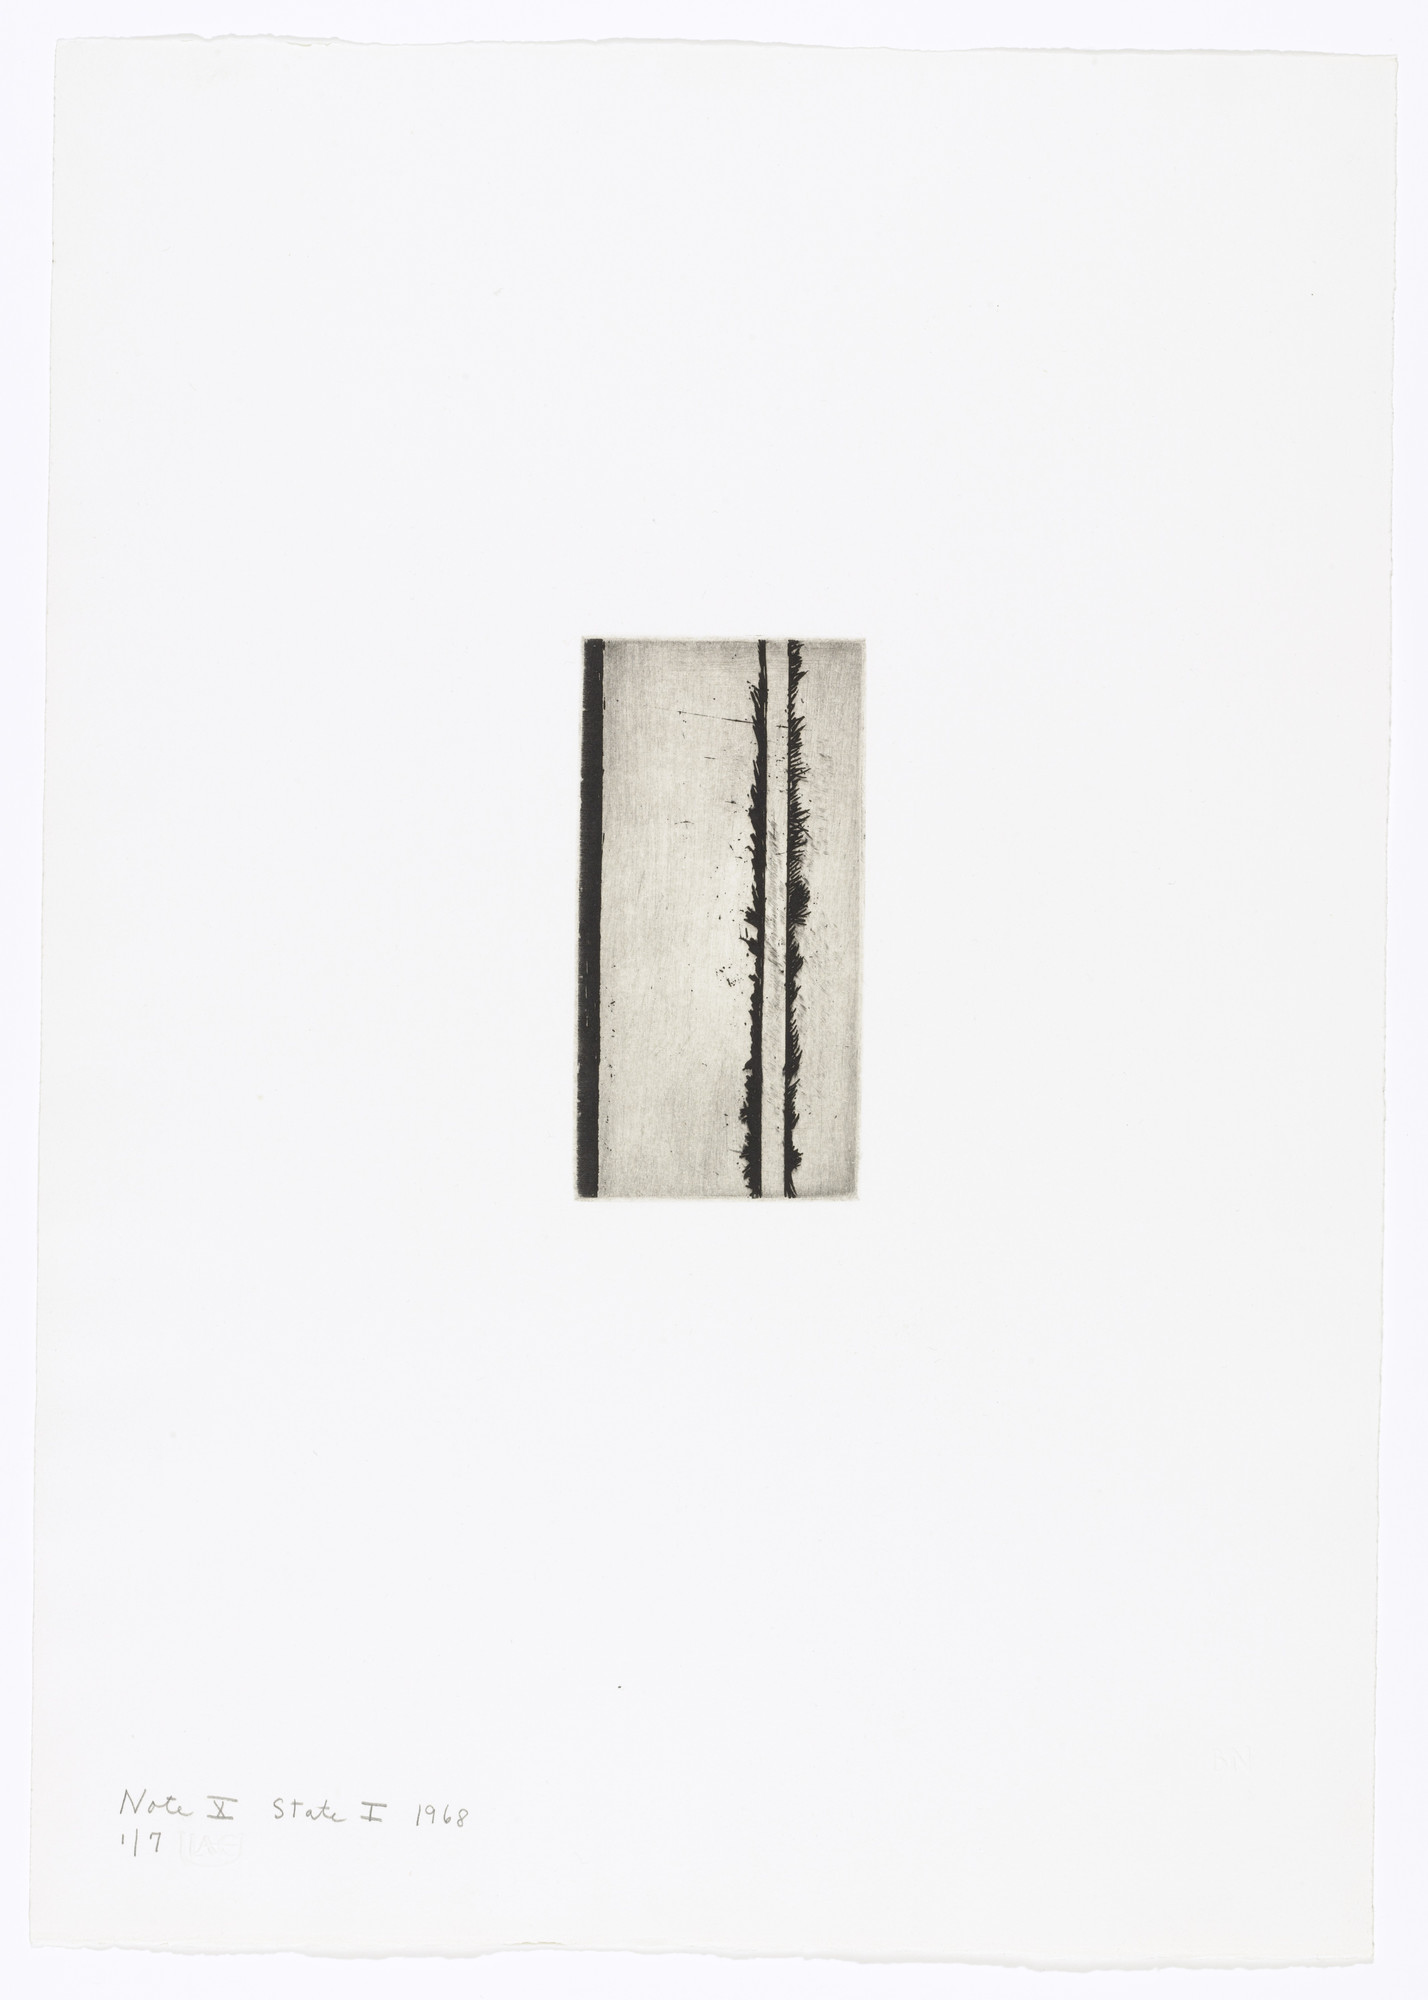 Barnett Newman. Note X (State I) from Notes. 1968